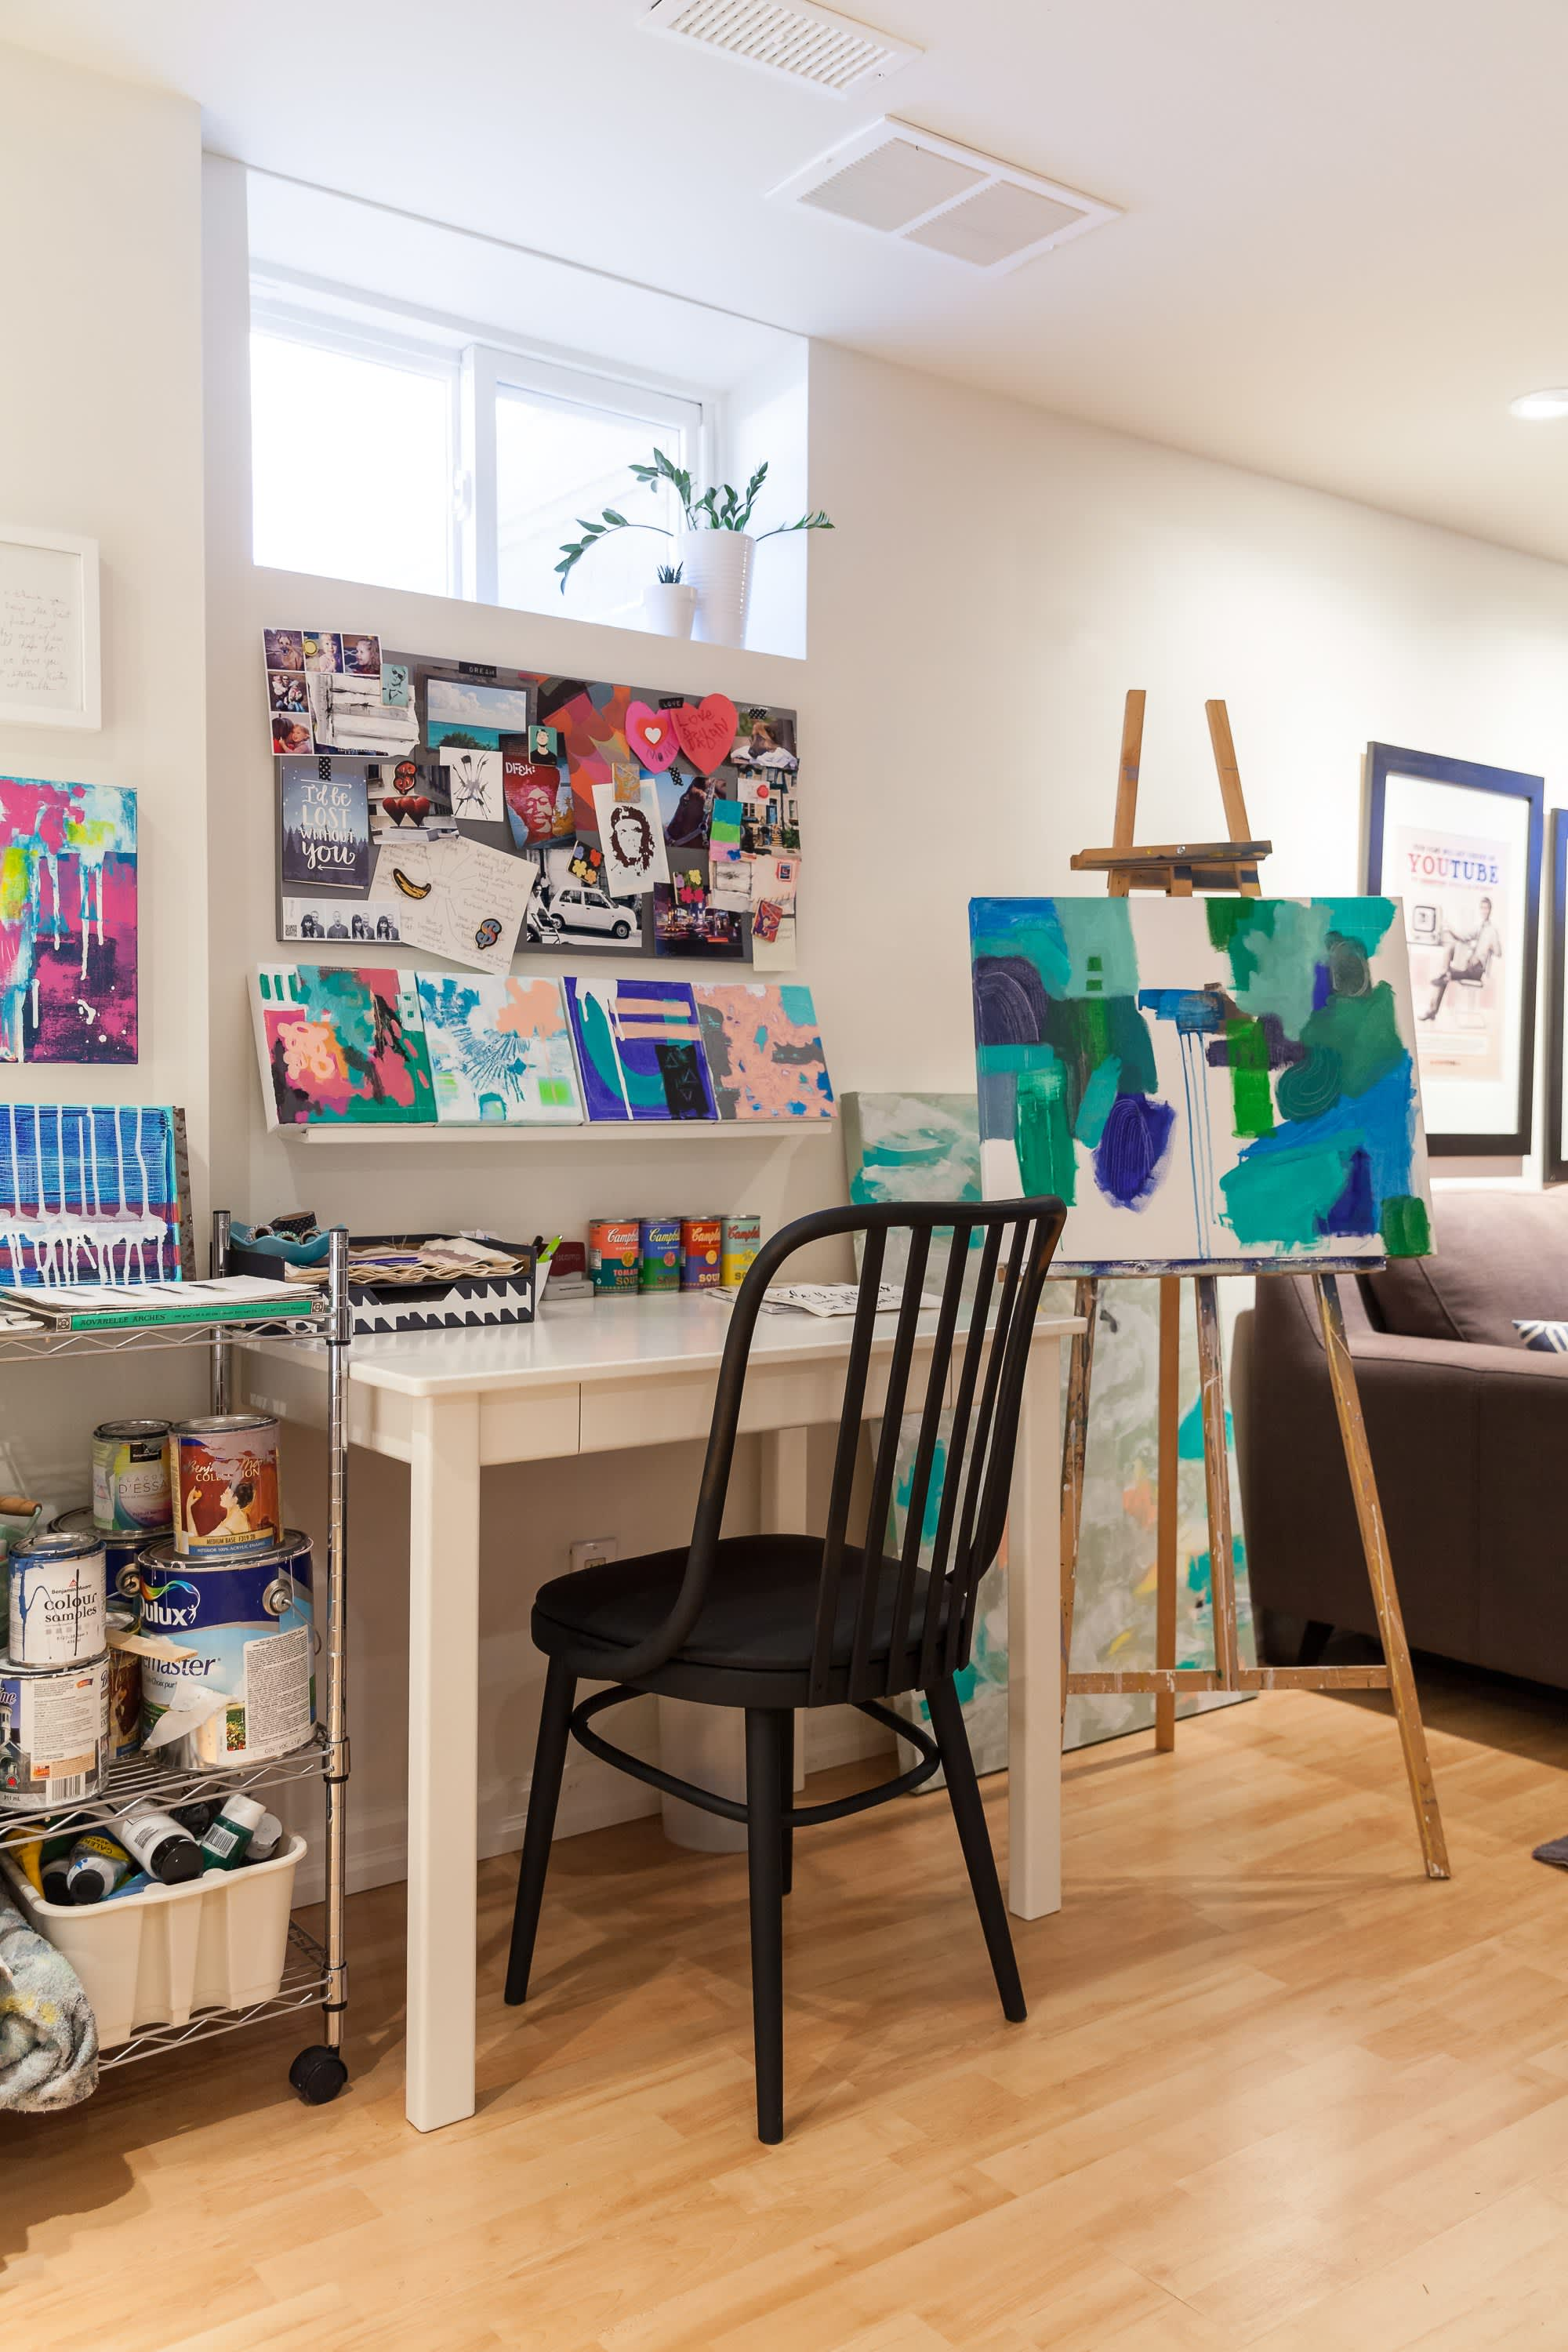 House Tour: An Art-Filled Family Home in Ontario ...